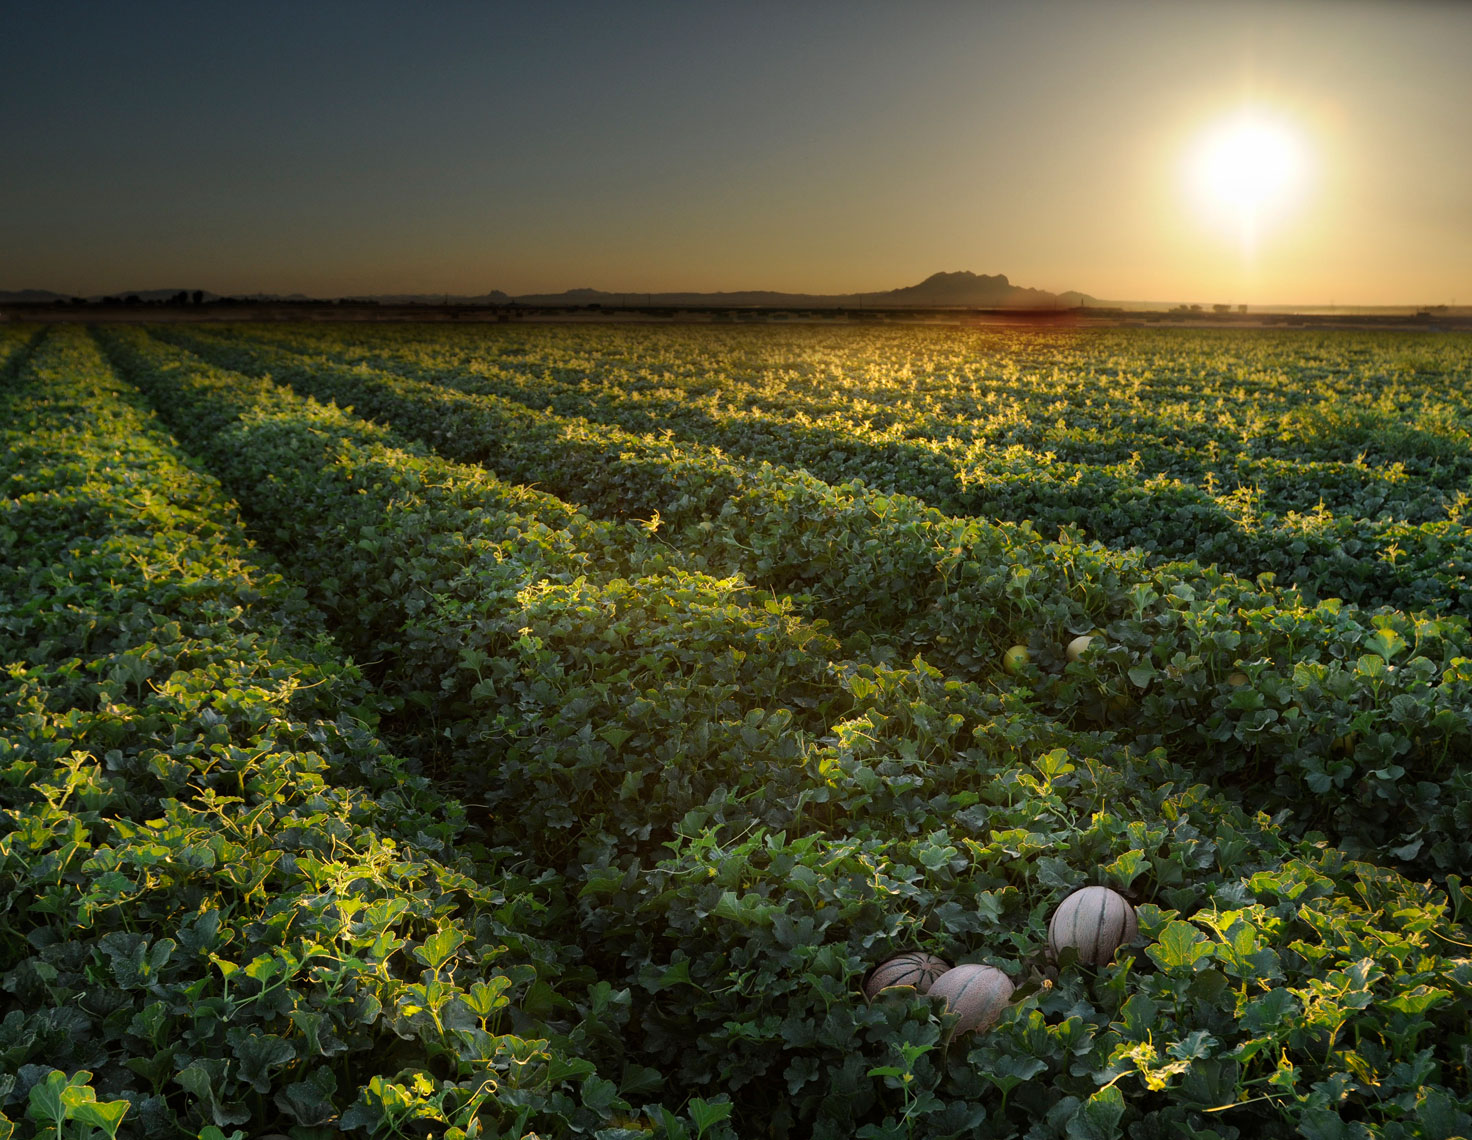 Beautiful-backlit-Charentais-French-Melons-in-the-field-at-sunset-by-farm-photographer-Joe-Atlas.